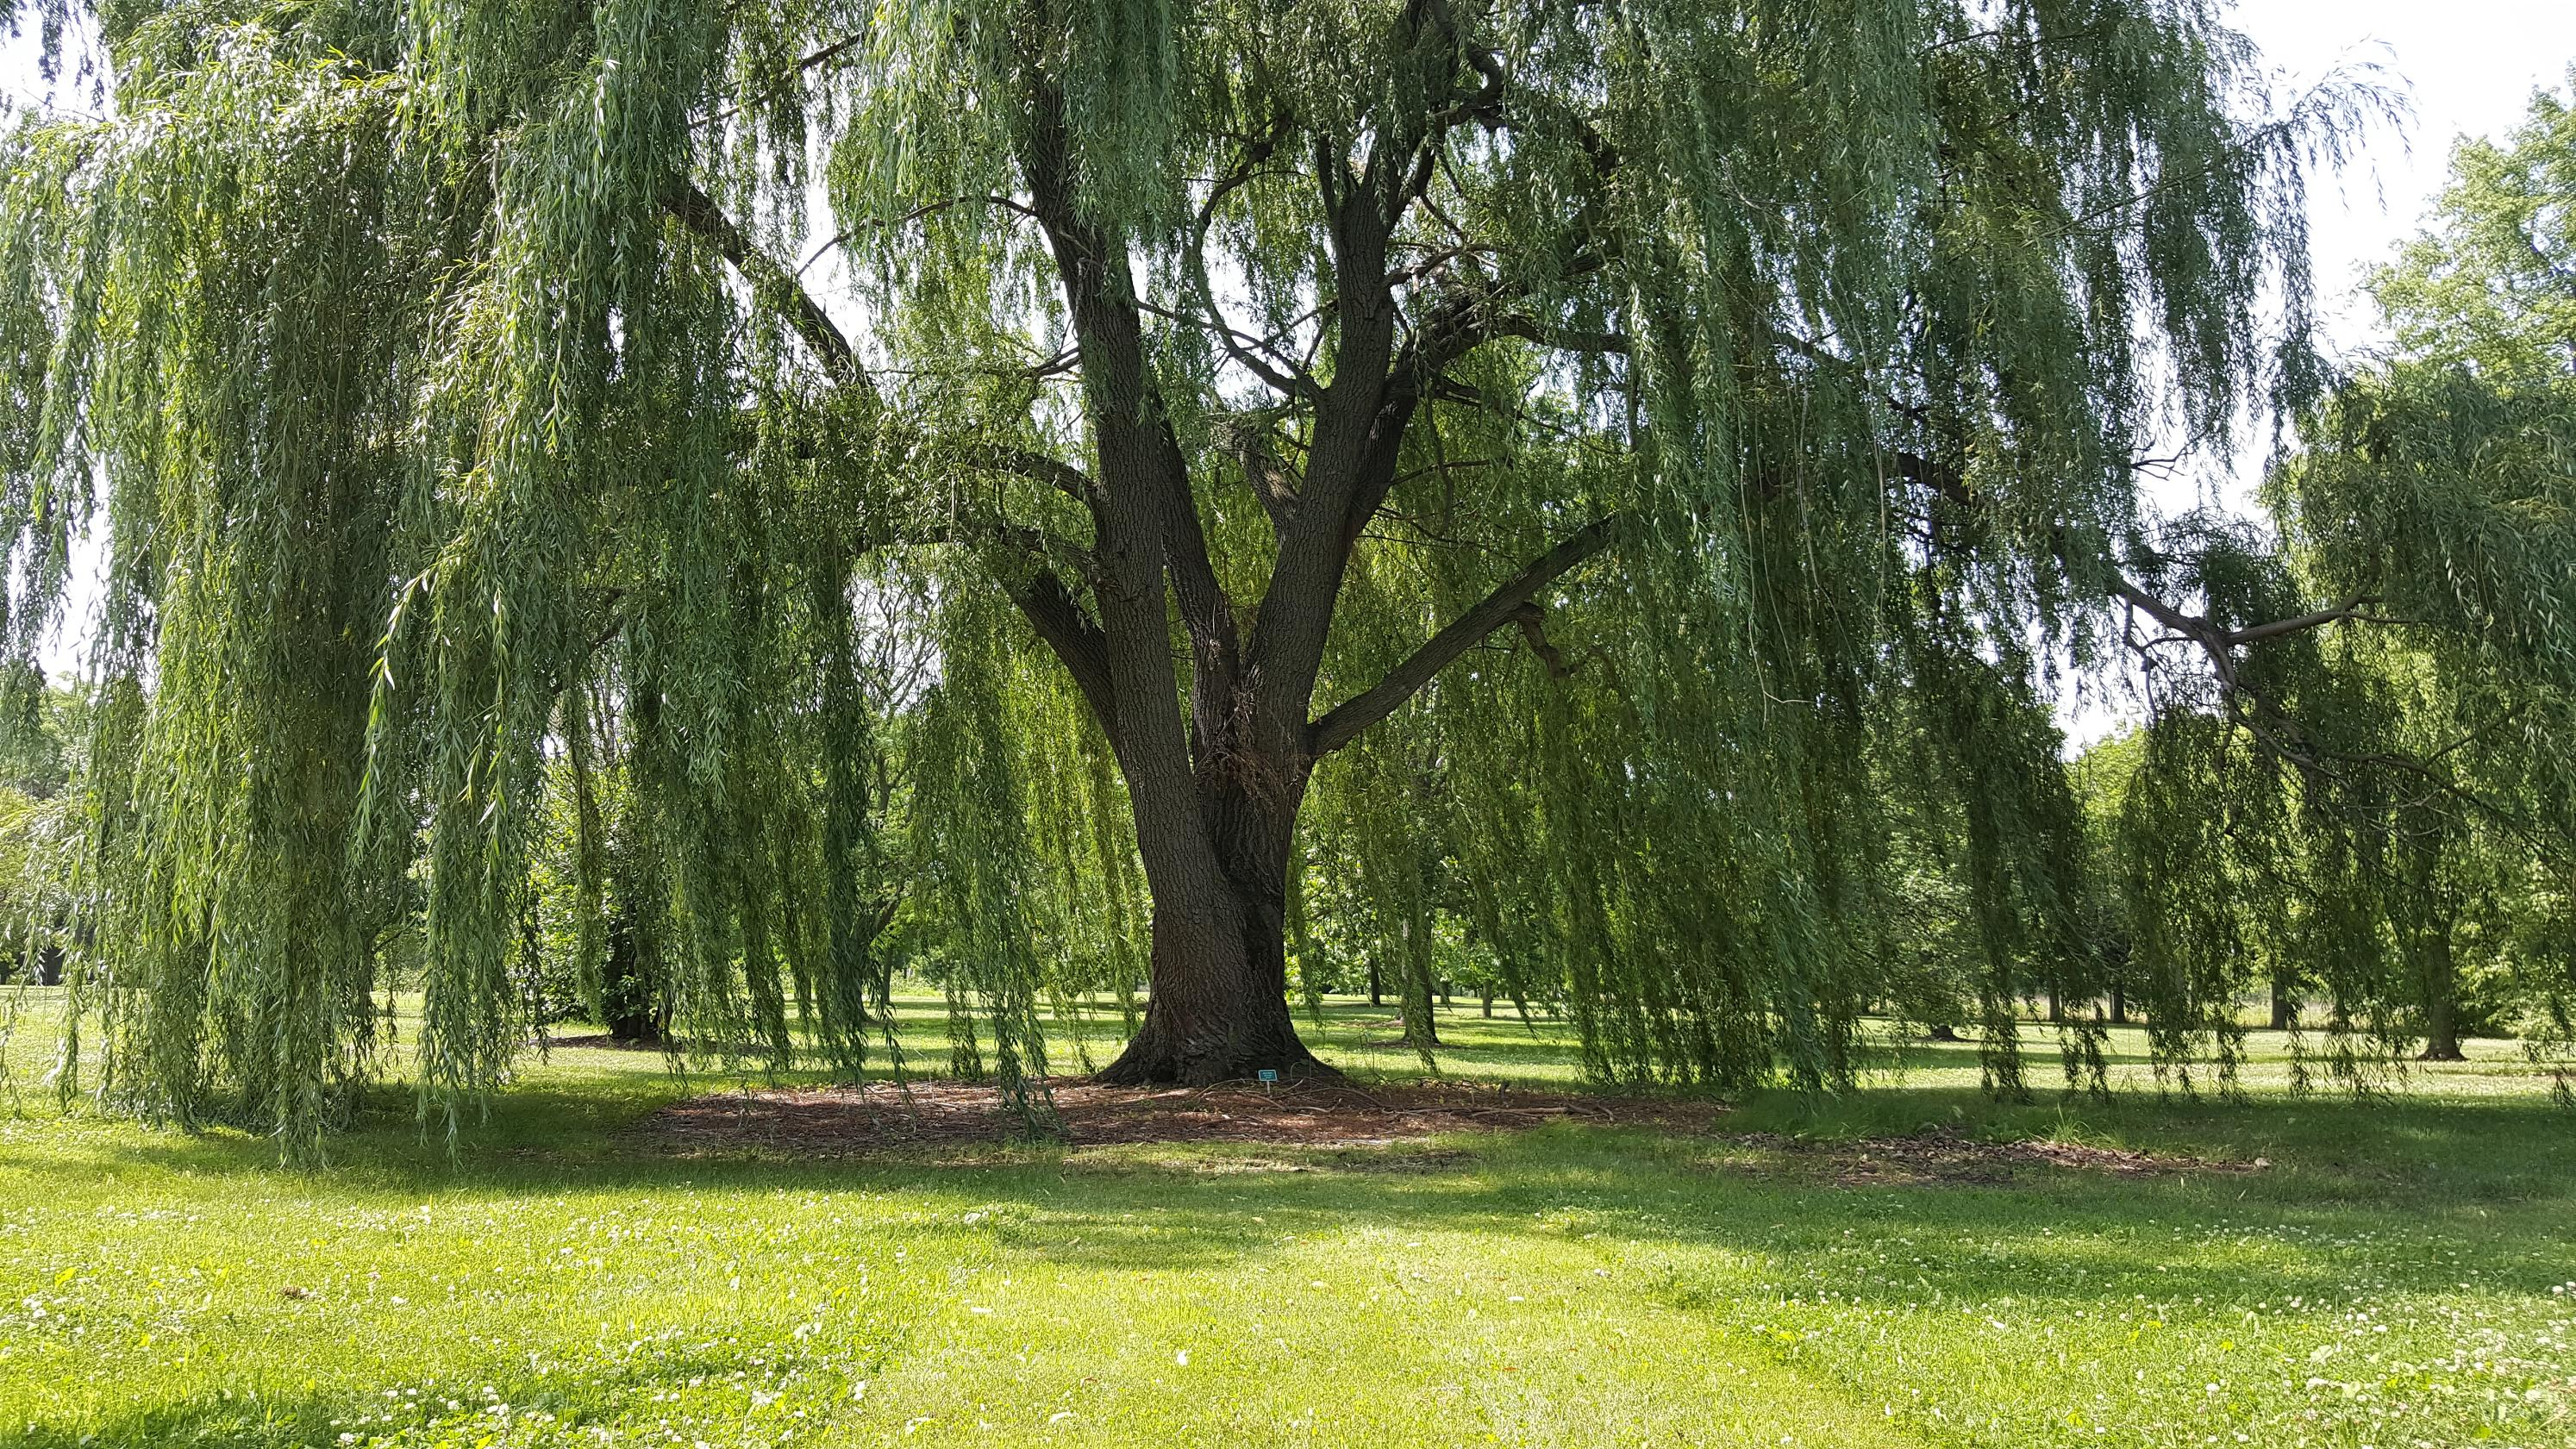 2988x1681 - Willow Tree 2